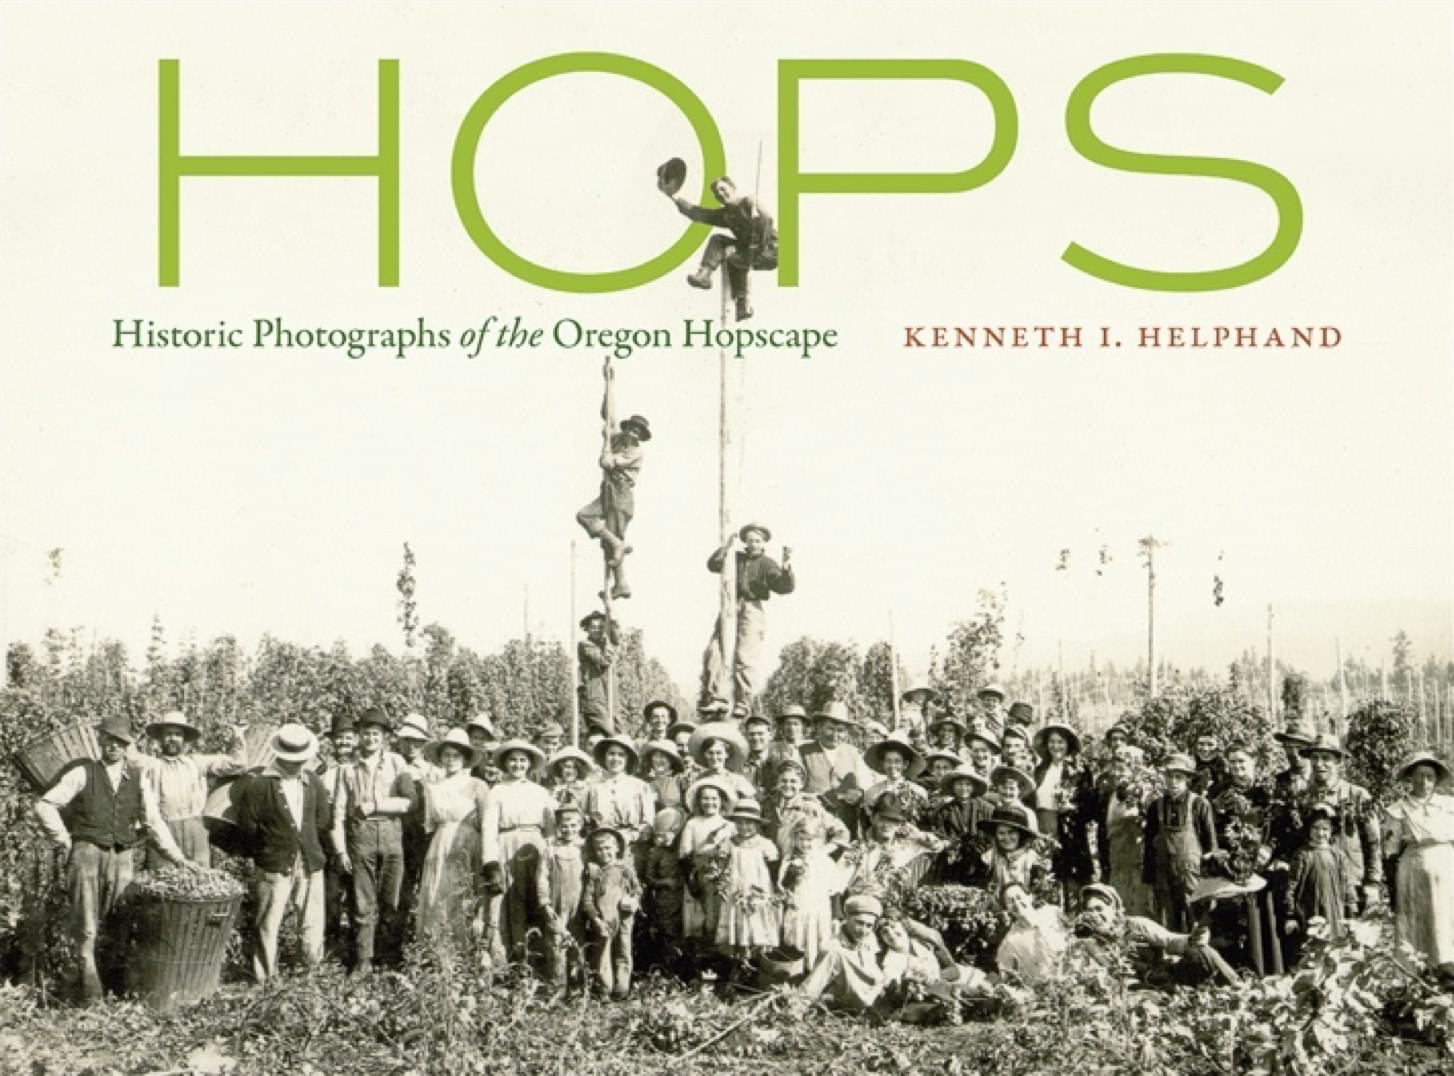 Pickers with men on poles, 1930